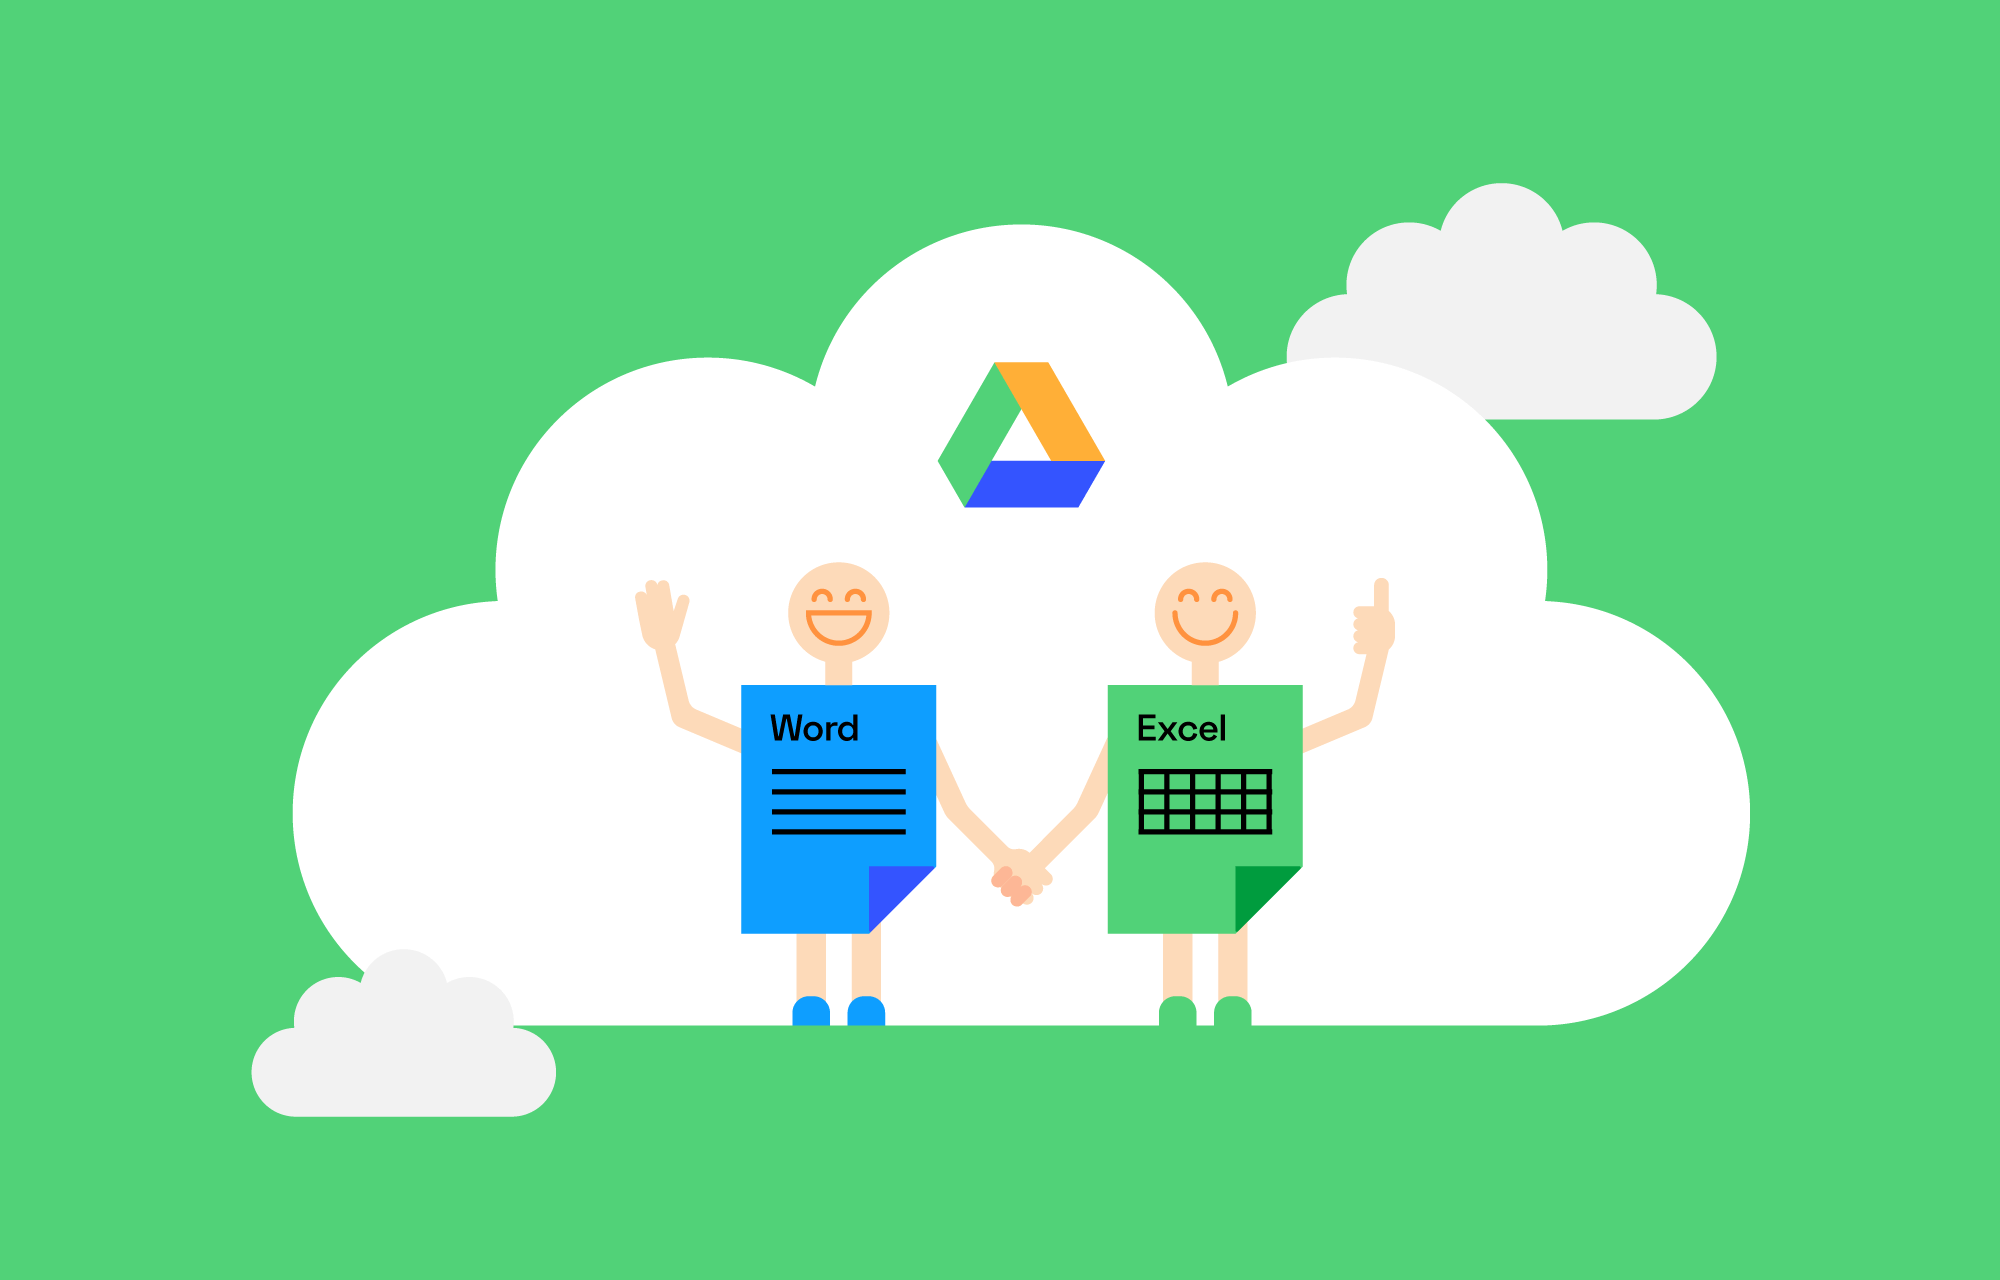 Word and Excel illustrated as people holding hands inside a Google Drive cloud.